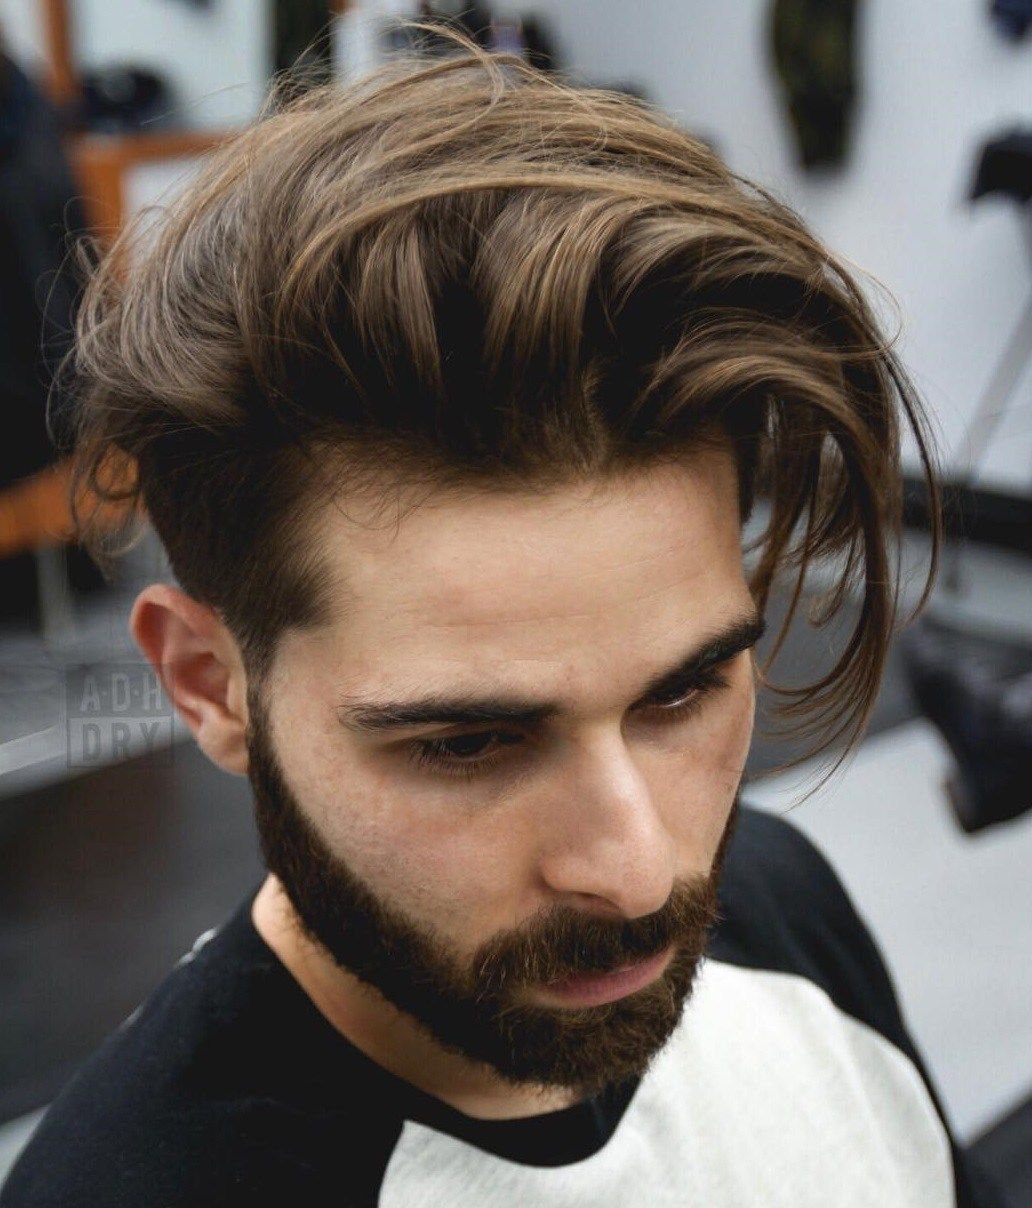 50 funky men's undercut hairstyles and haircuts | hairstyles